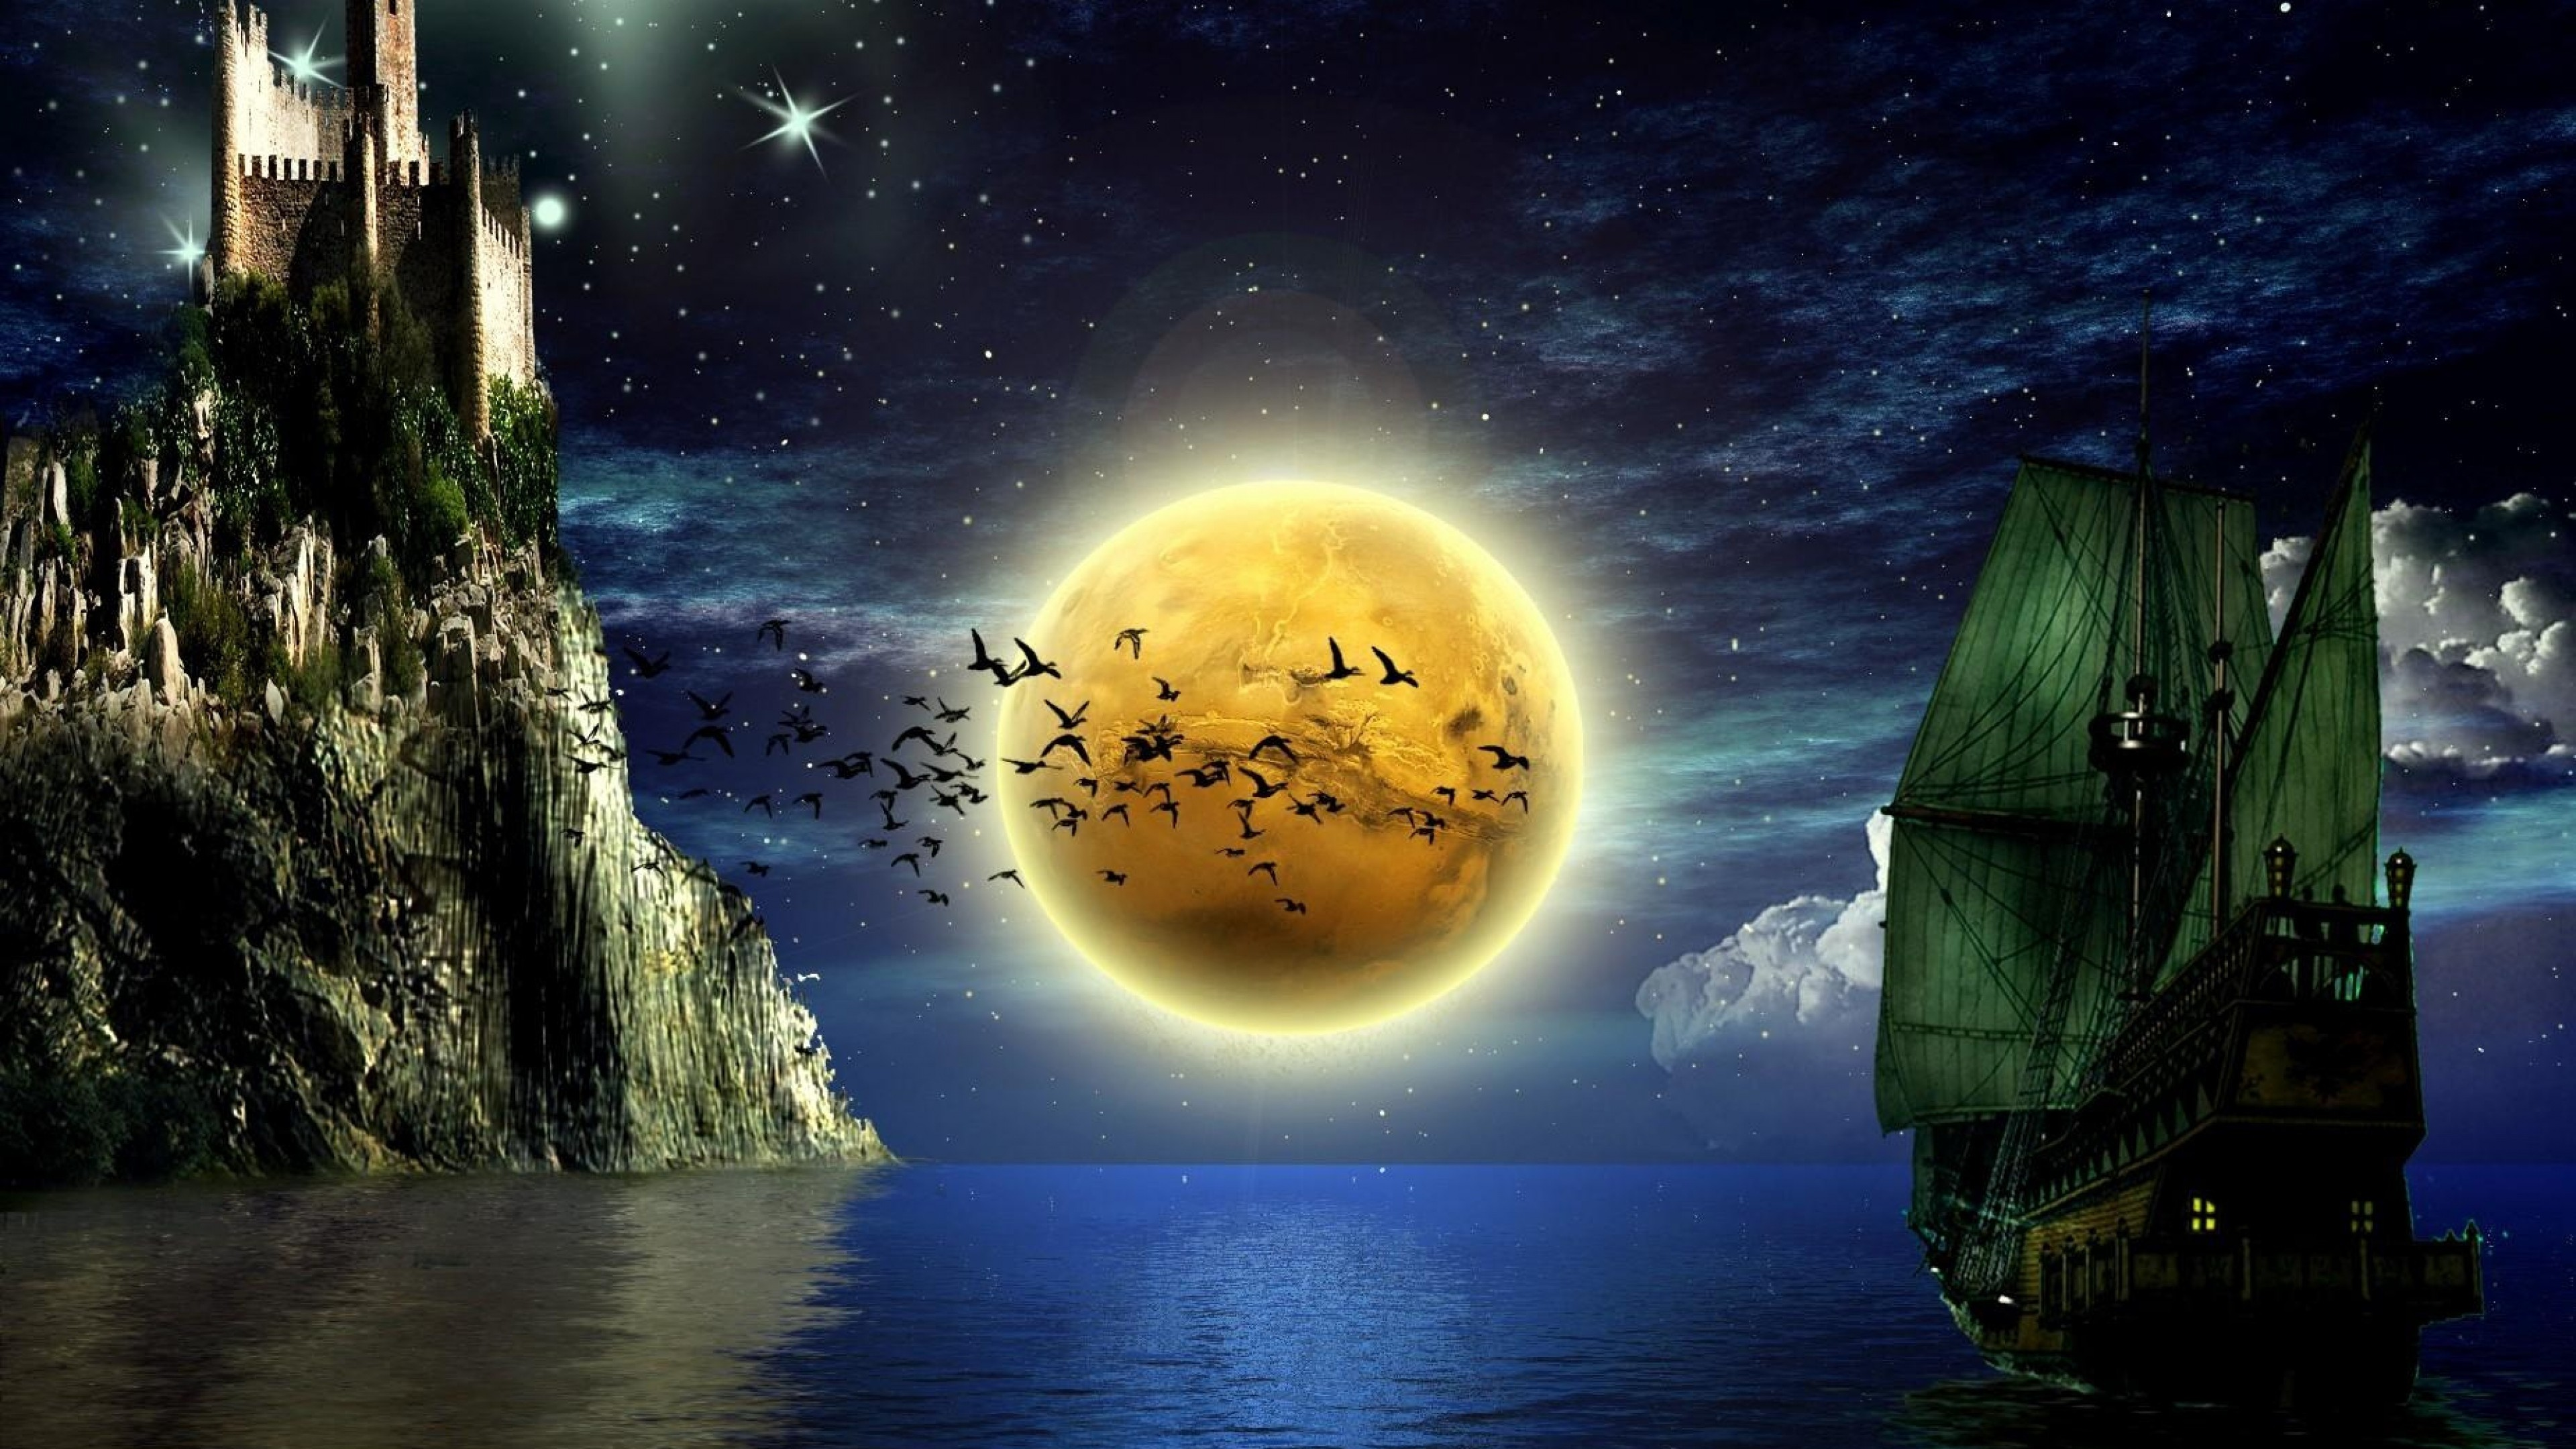 Sun Moon Desktop Wallpapers – HD Wallpapers Backgrounds of Your Choice